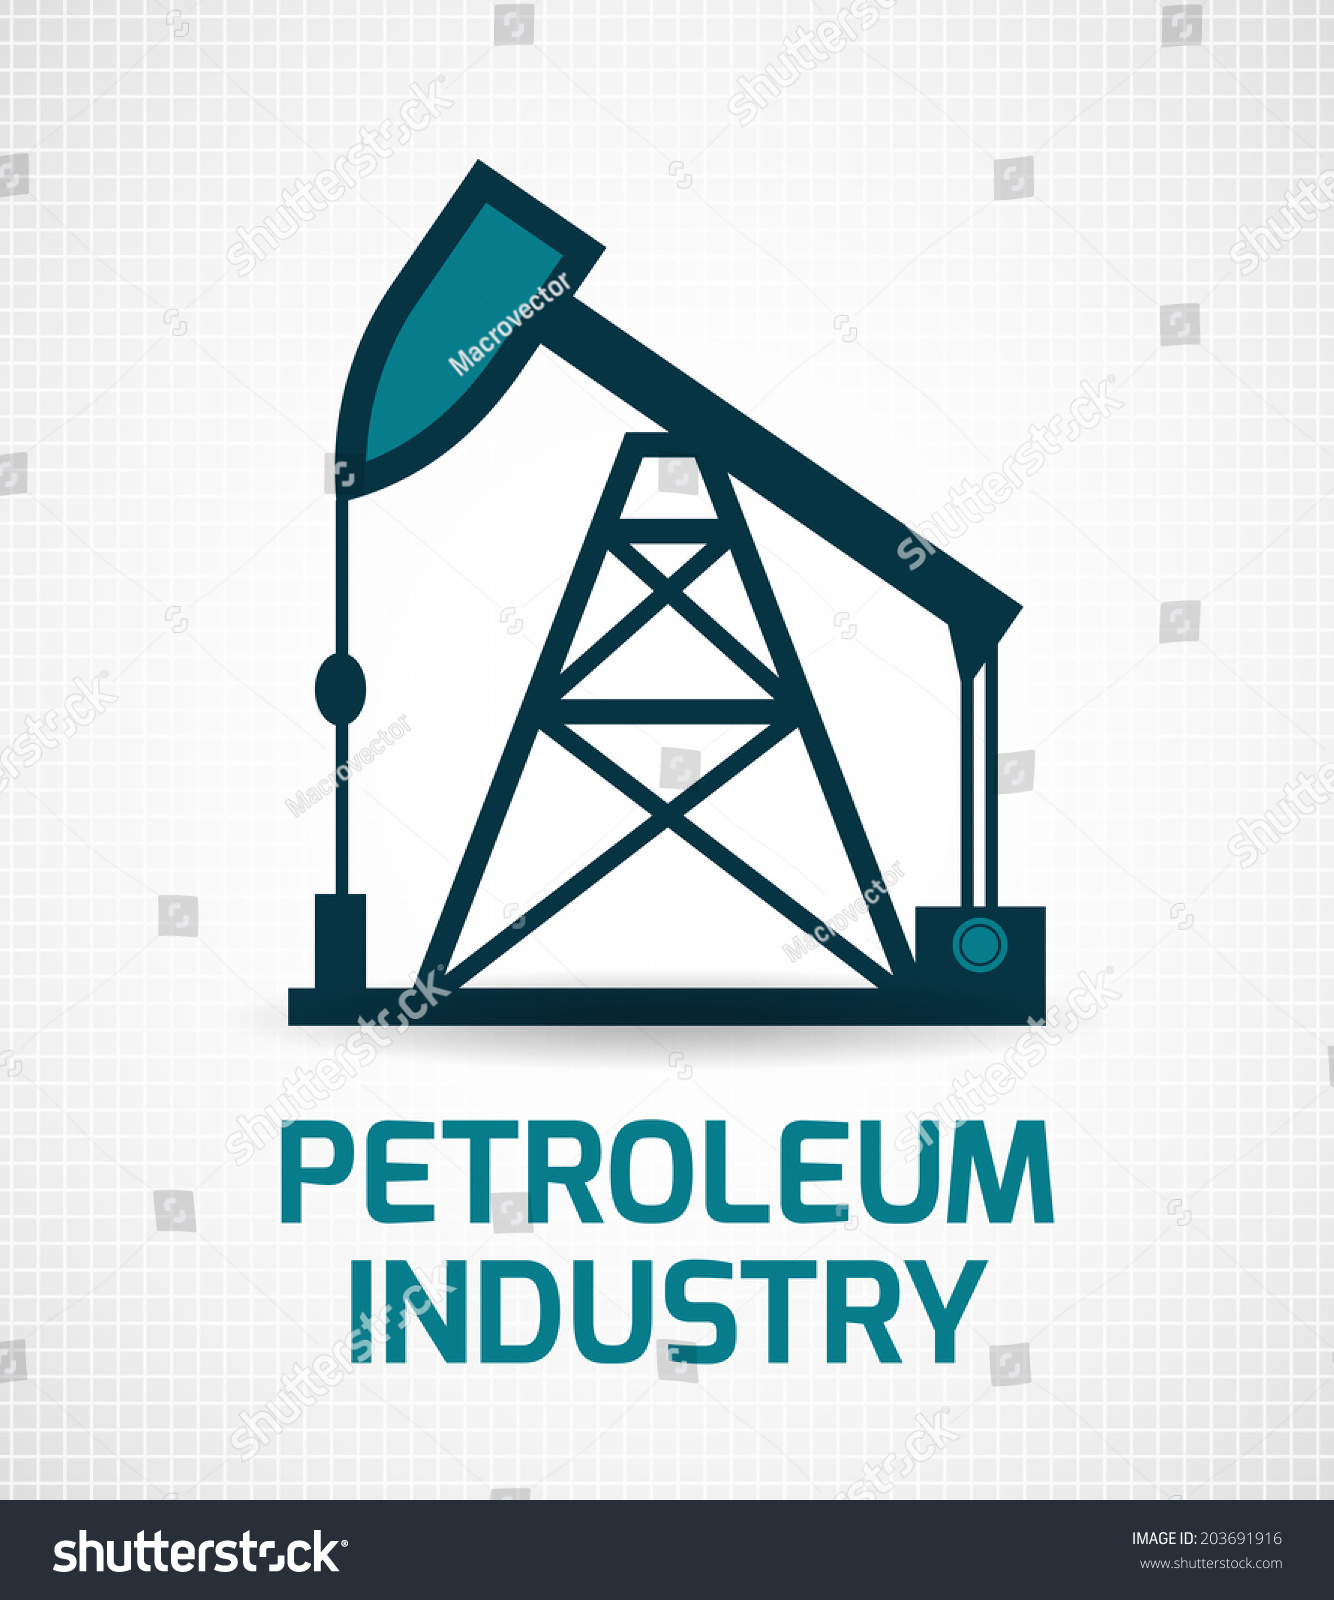 Petroleum industry crude oil extraction removing stock petroleum industry crude oil extraction and removing pumpjack installation symbol pictogram poster print abstract illustration biocorpaavc Gallery